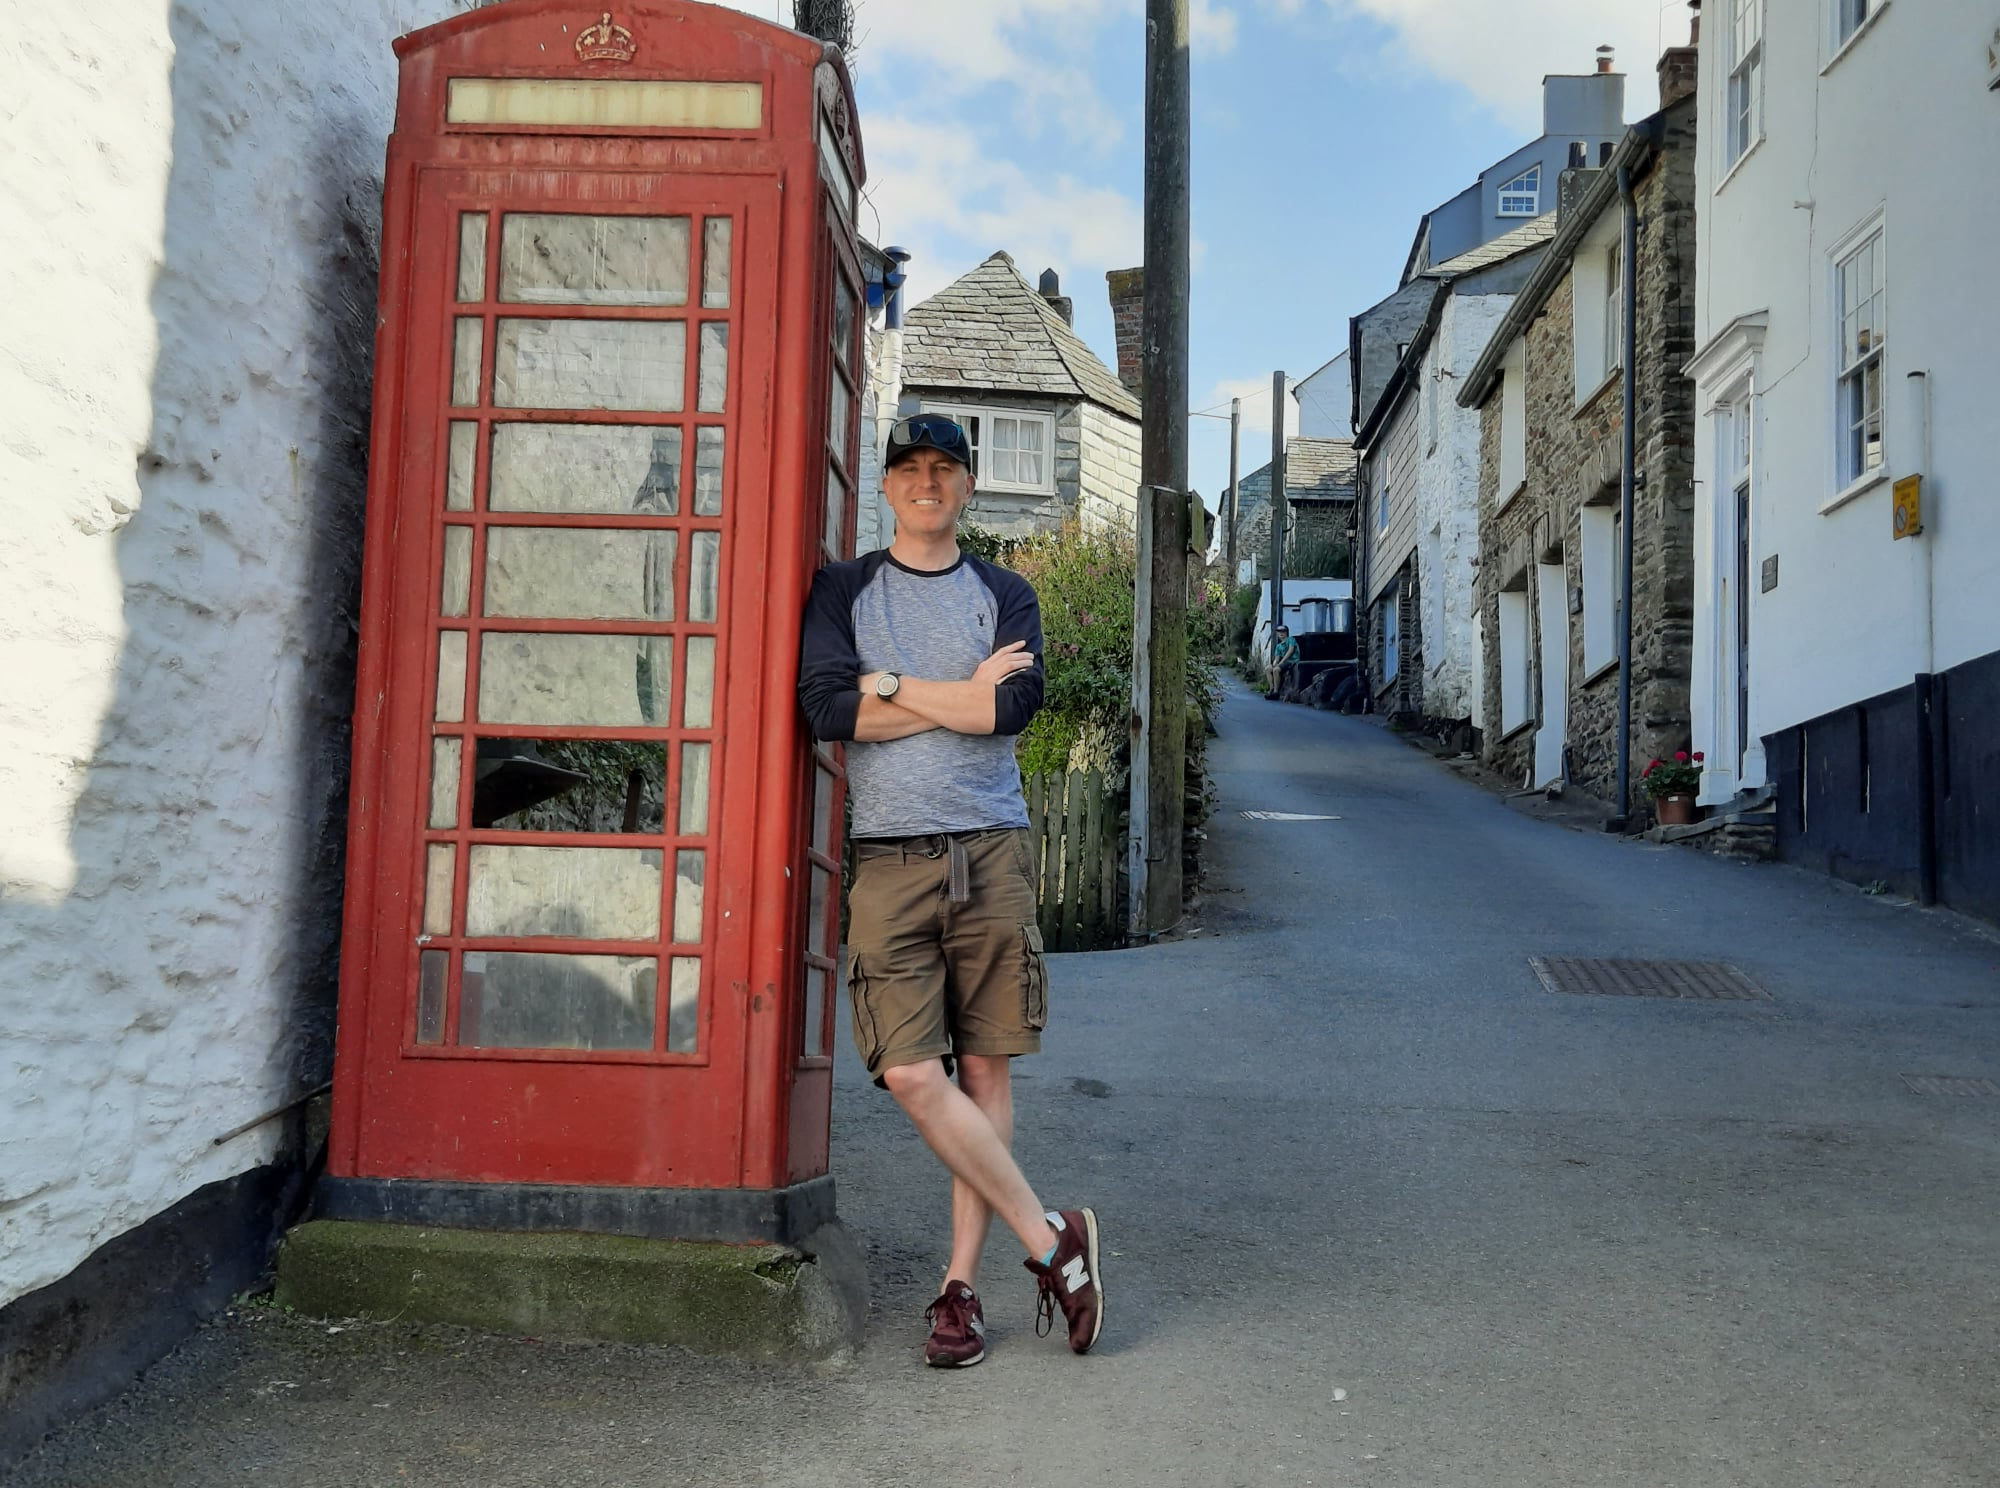 K6 Payphone at Port Isaac with First Coding